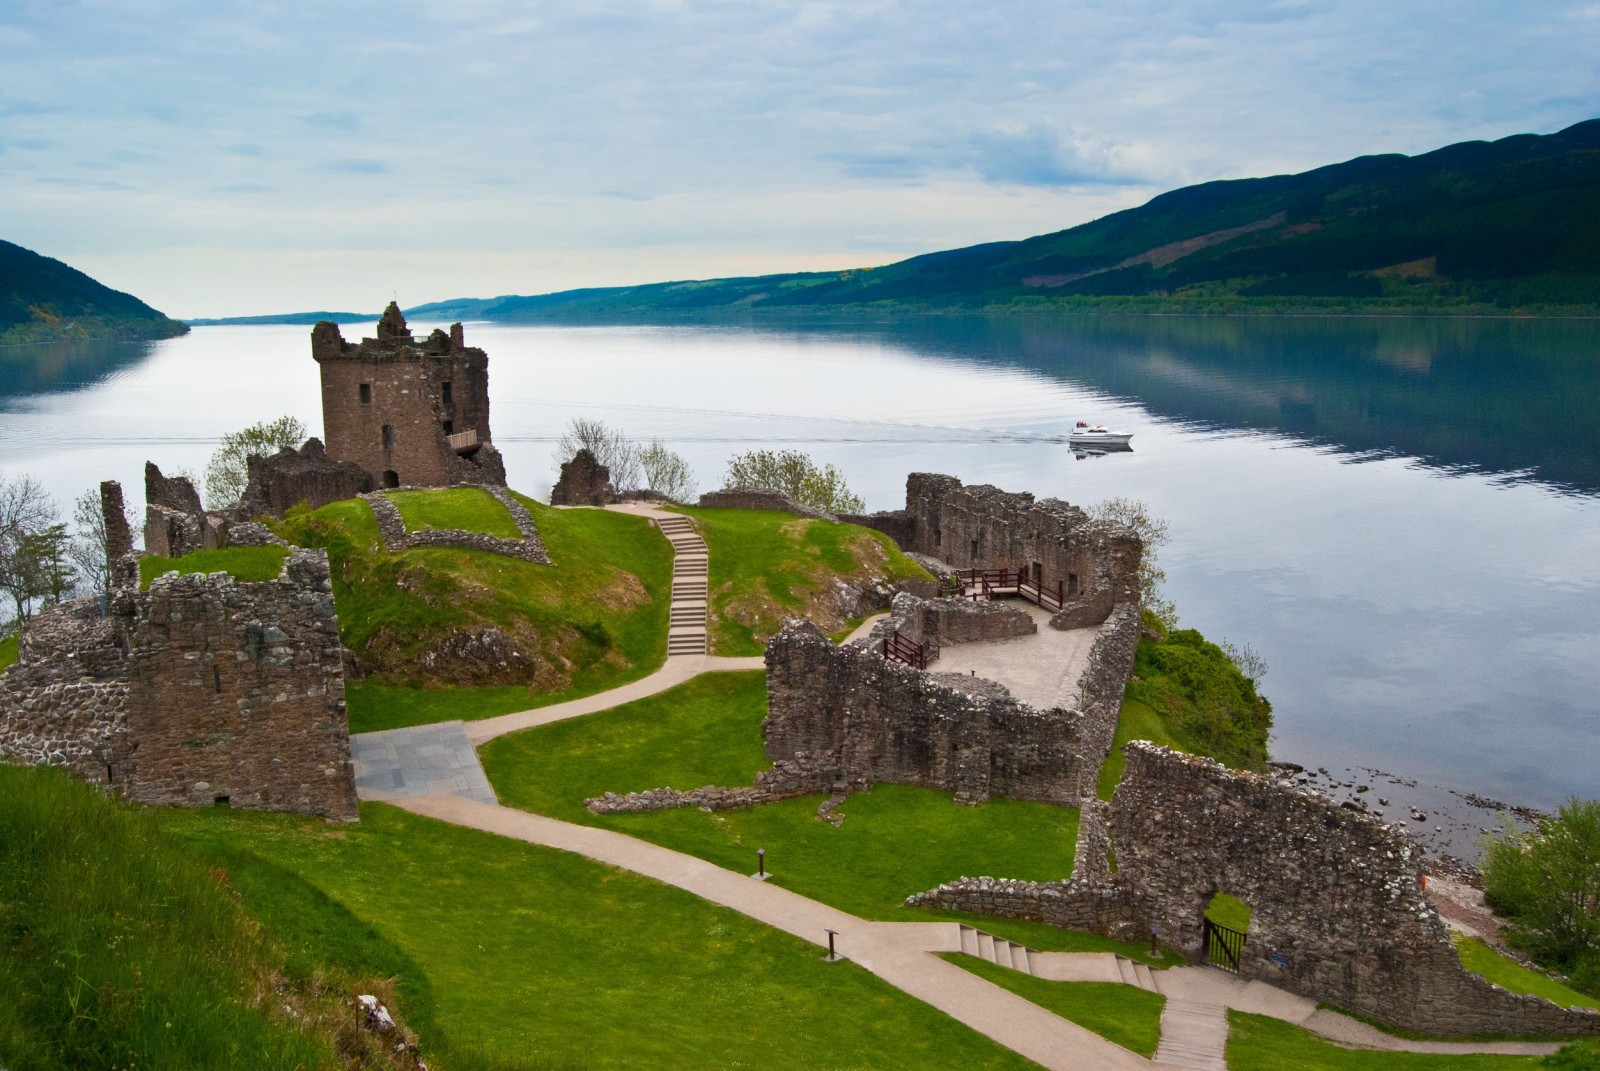 Loch Ness and Drumnadrochit Castle